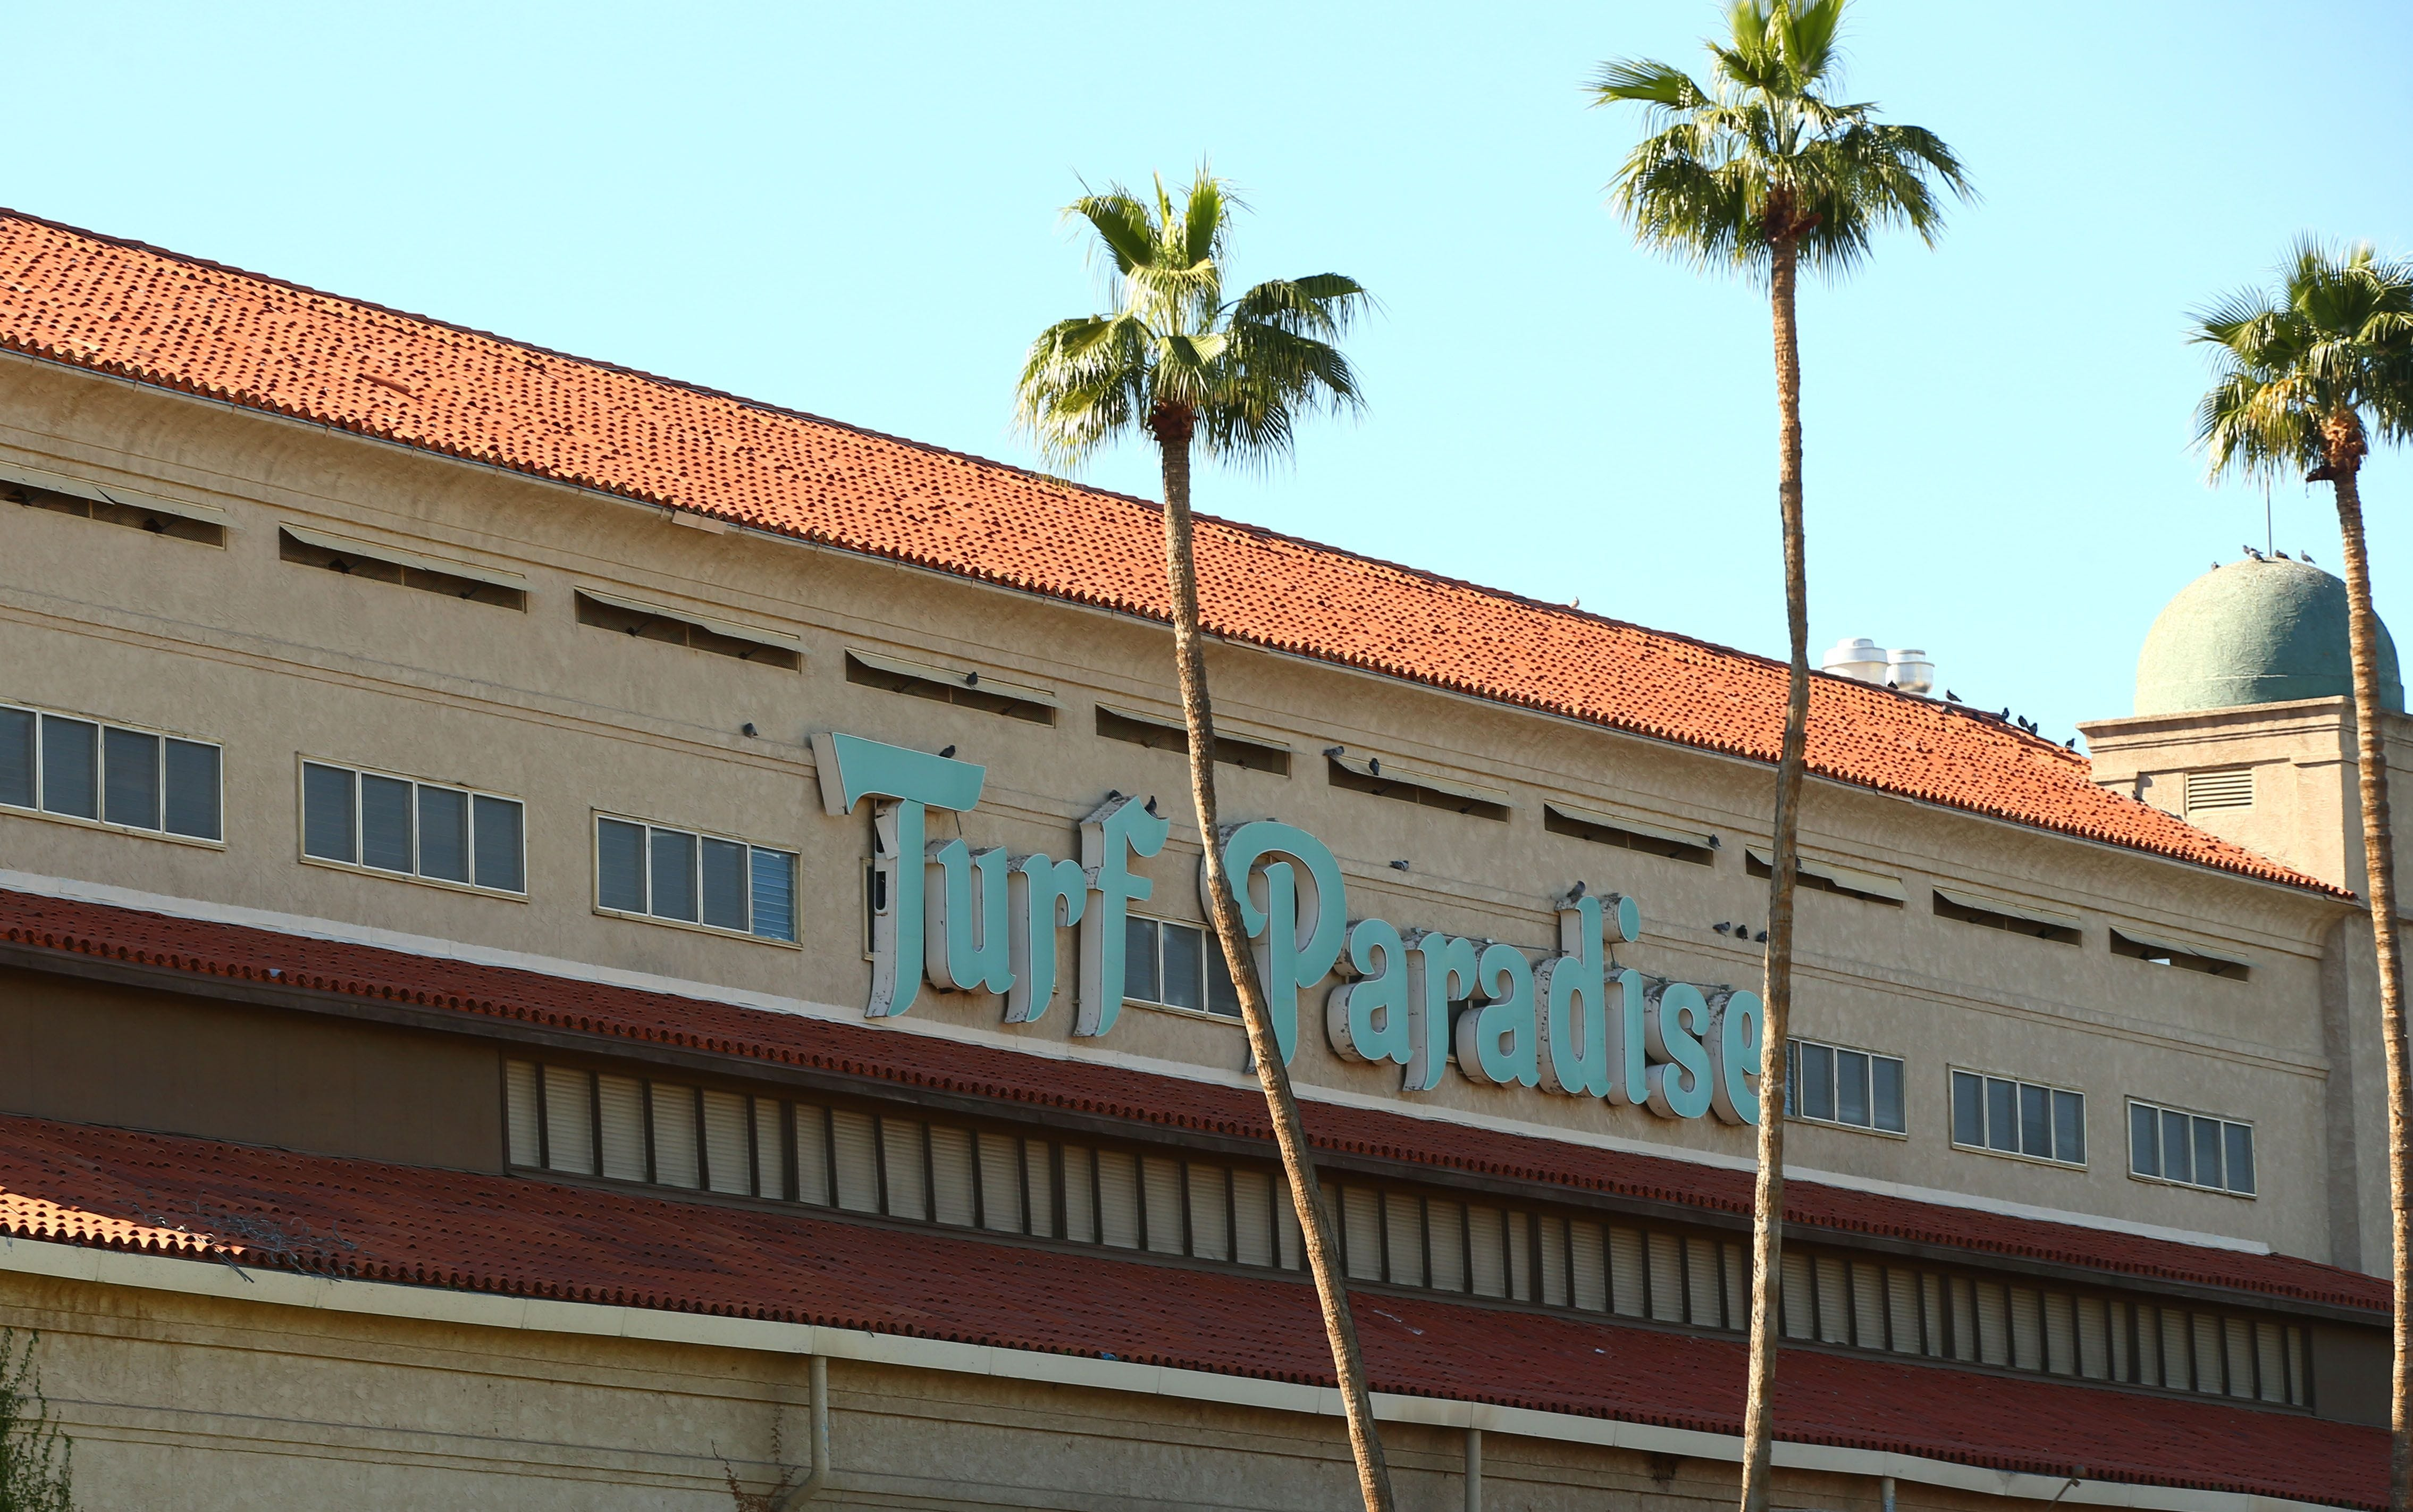 Horse racing outlets accuse Turf Paradise of betting 'monopoly'